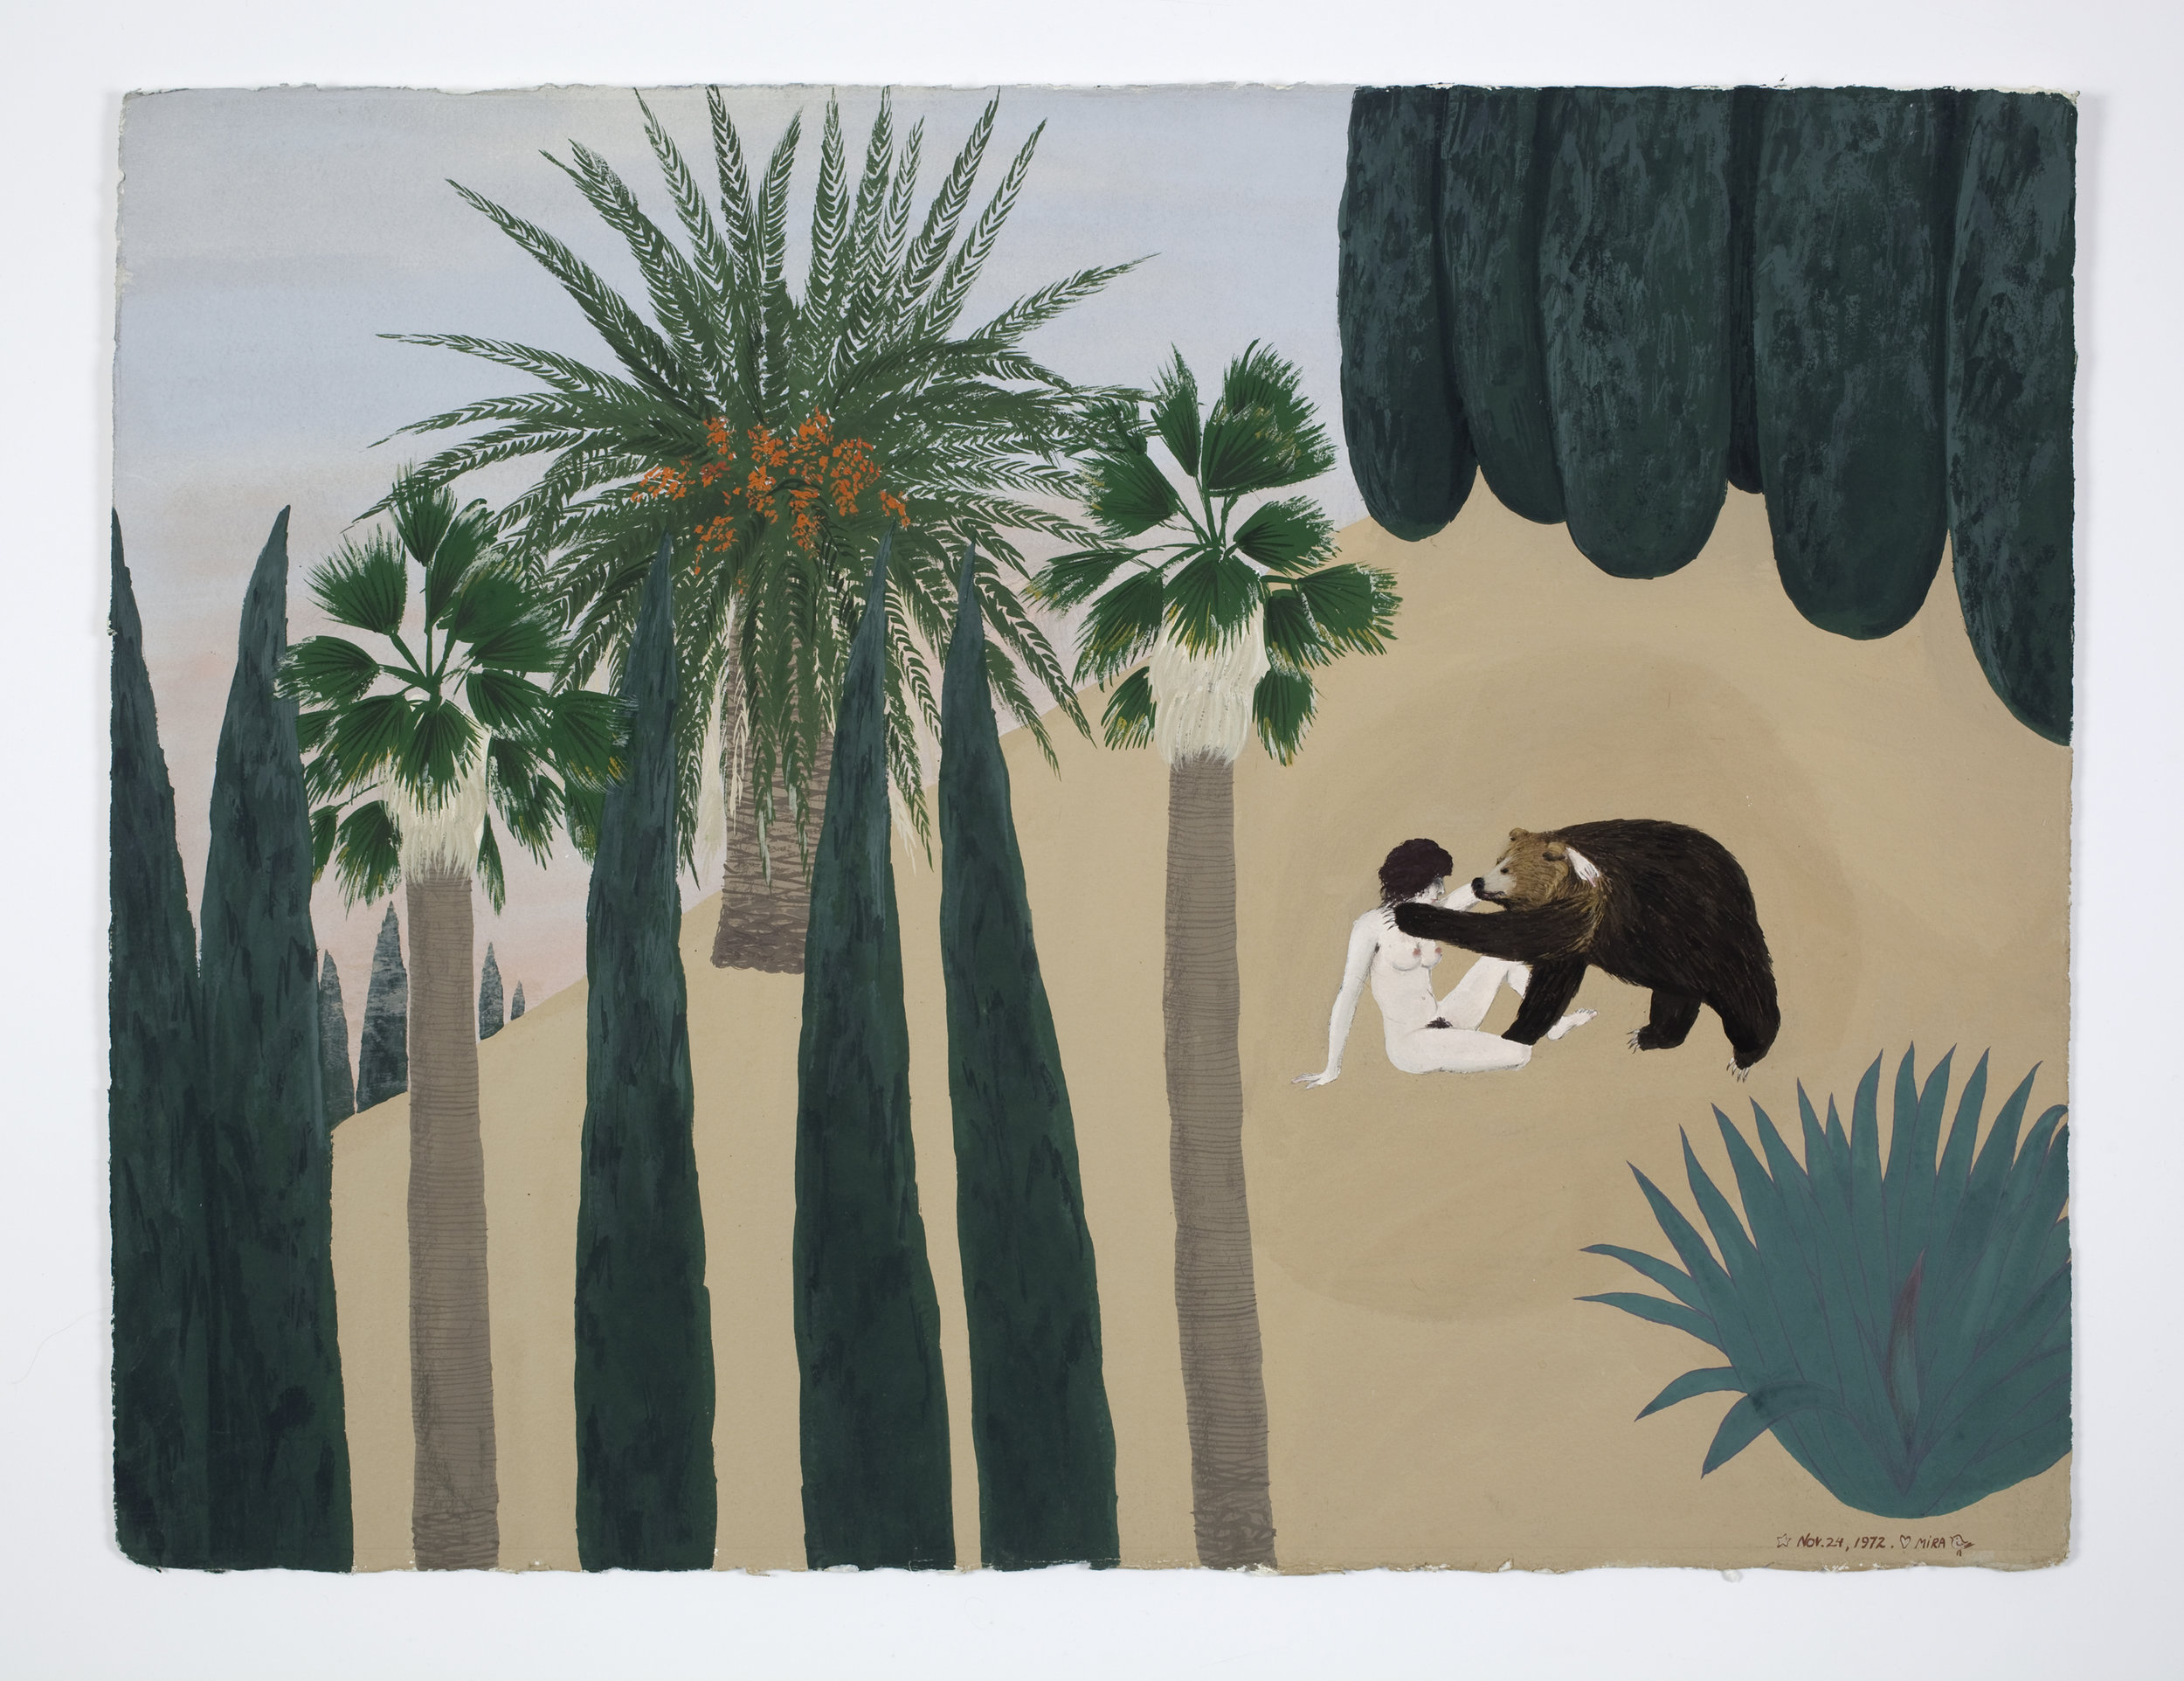 Mira Schor   Bear Triptych (Part I),  November 1972  Gouache on Arches paper  22 x 30 inches